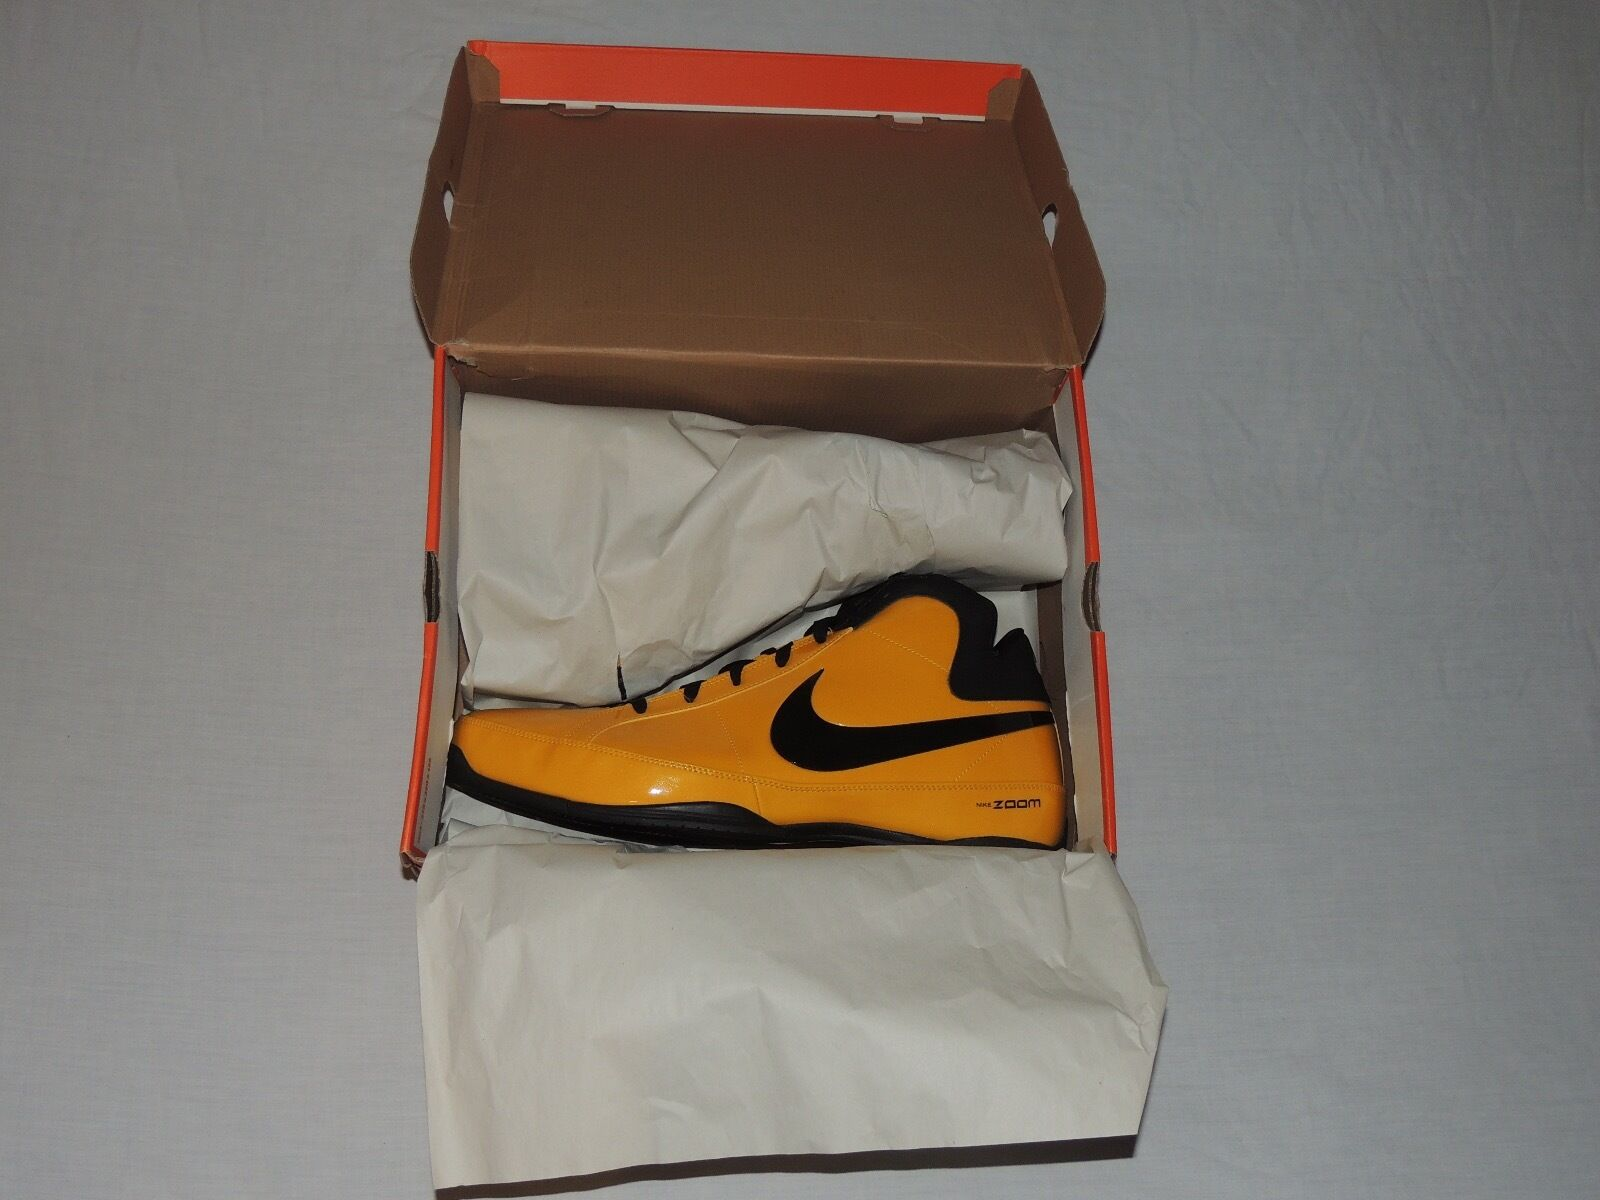 NWB NIKE ZOOM HUSTLE DEL SOL (YELLOW) BLACK SHOES SIZE 18 US 17 UK CM 36 BR 51